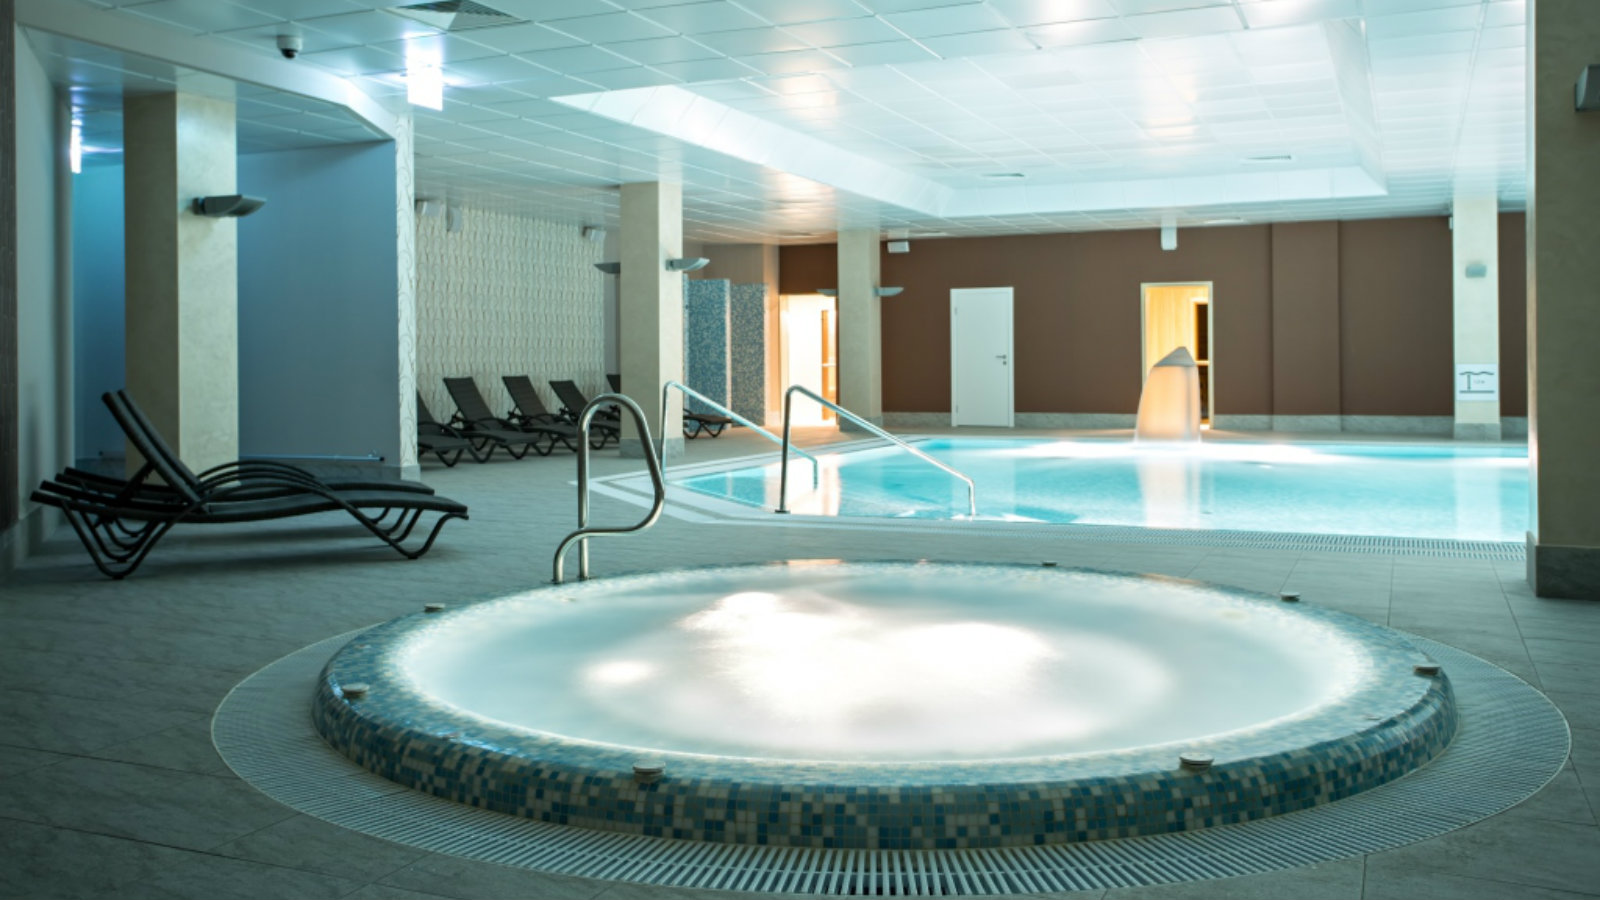 Jacuzzi for fast recovery and relaxation at Sheraton Moscow Sheremetyevo